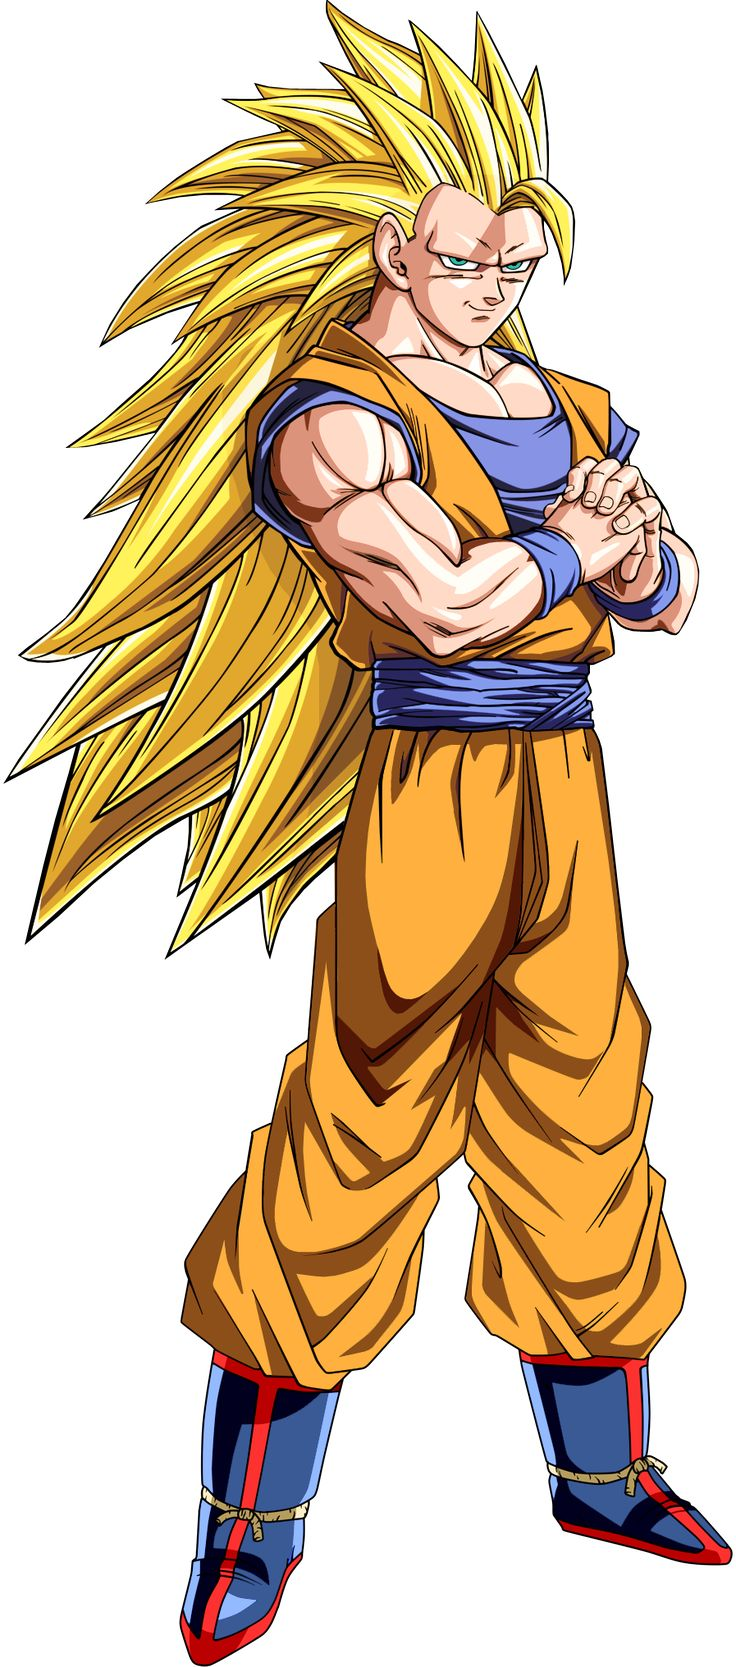 Goku Super Saiyajin fase 3 - DRAGÓN BALL Z